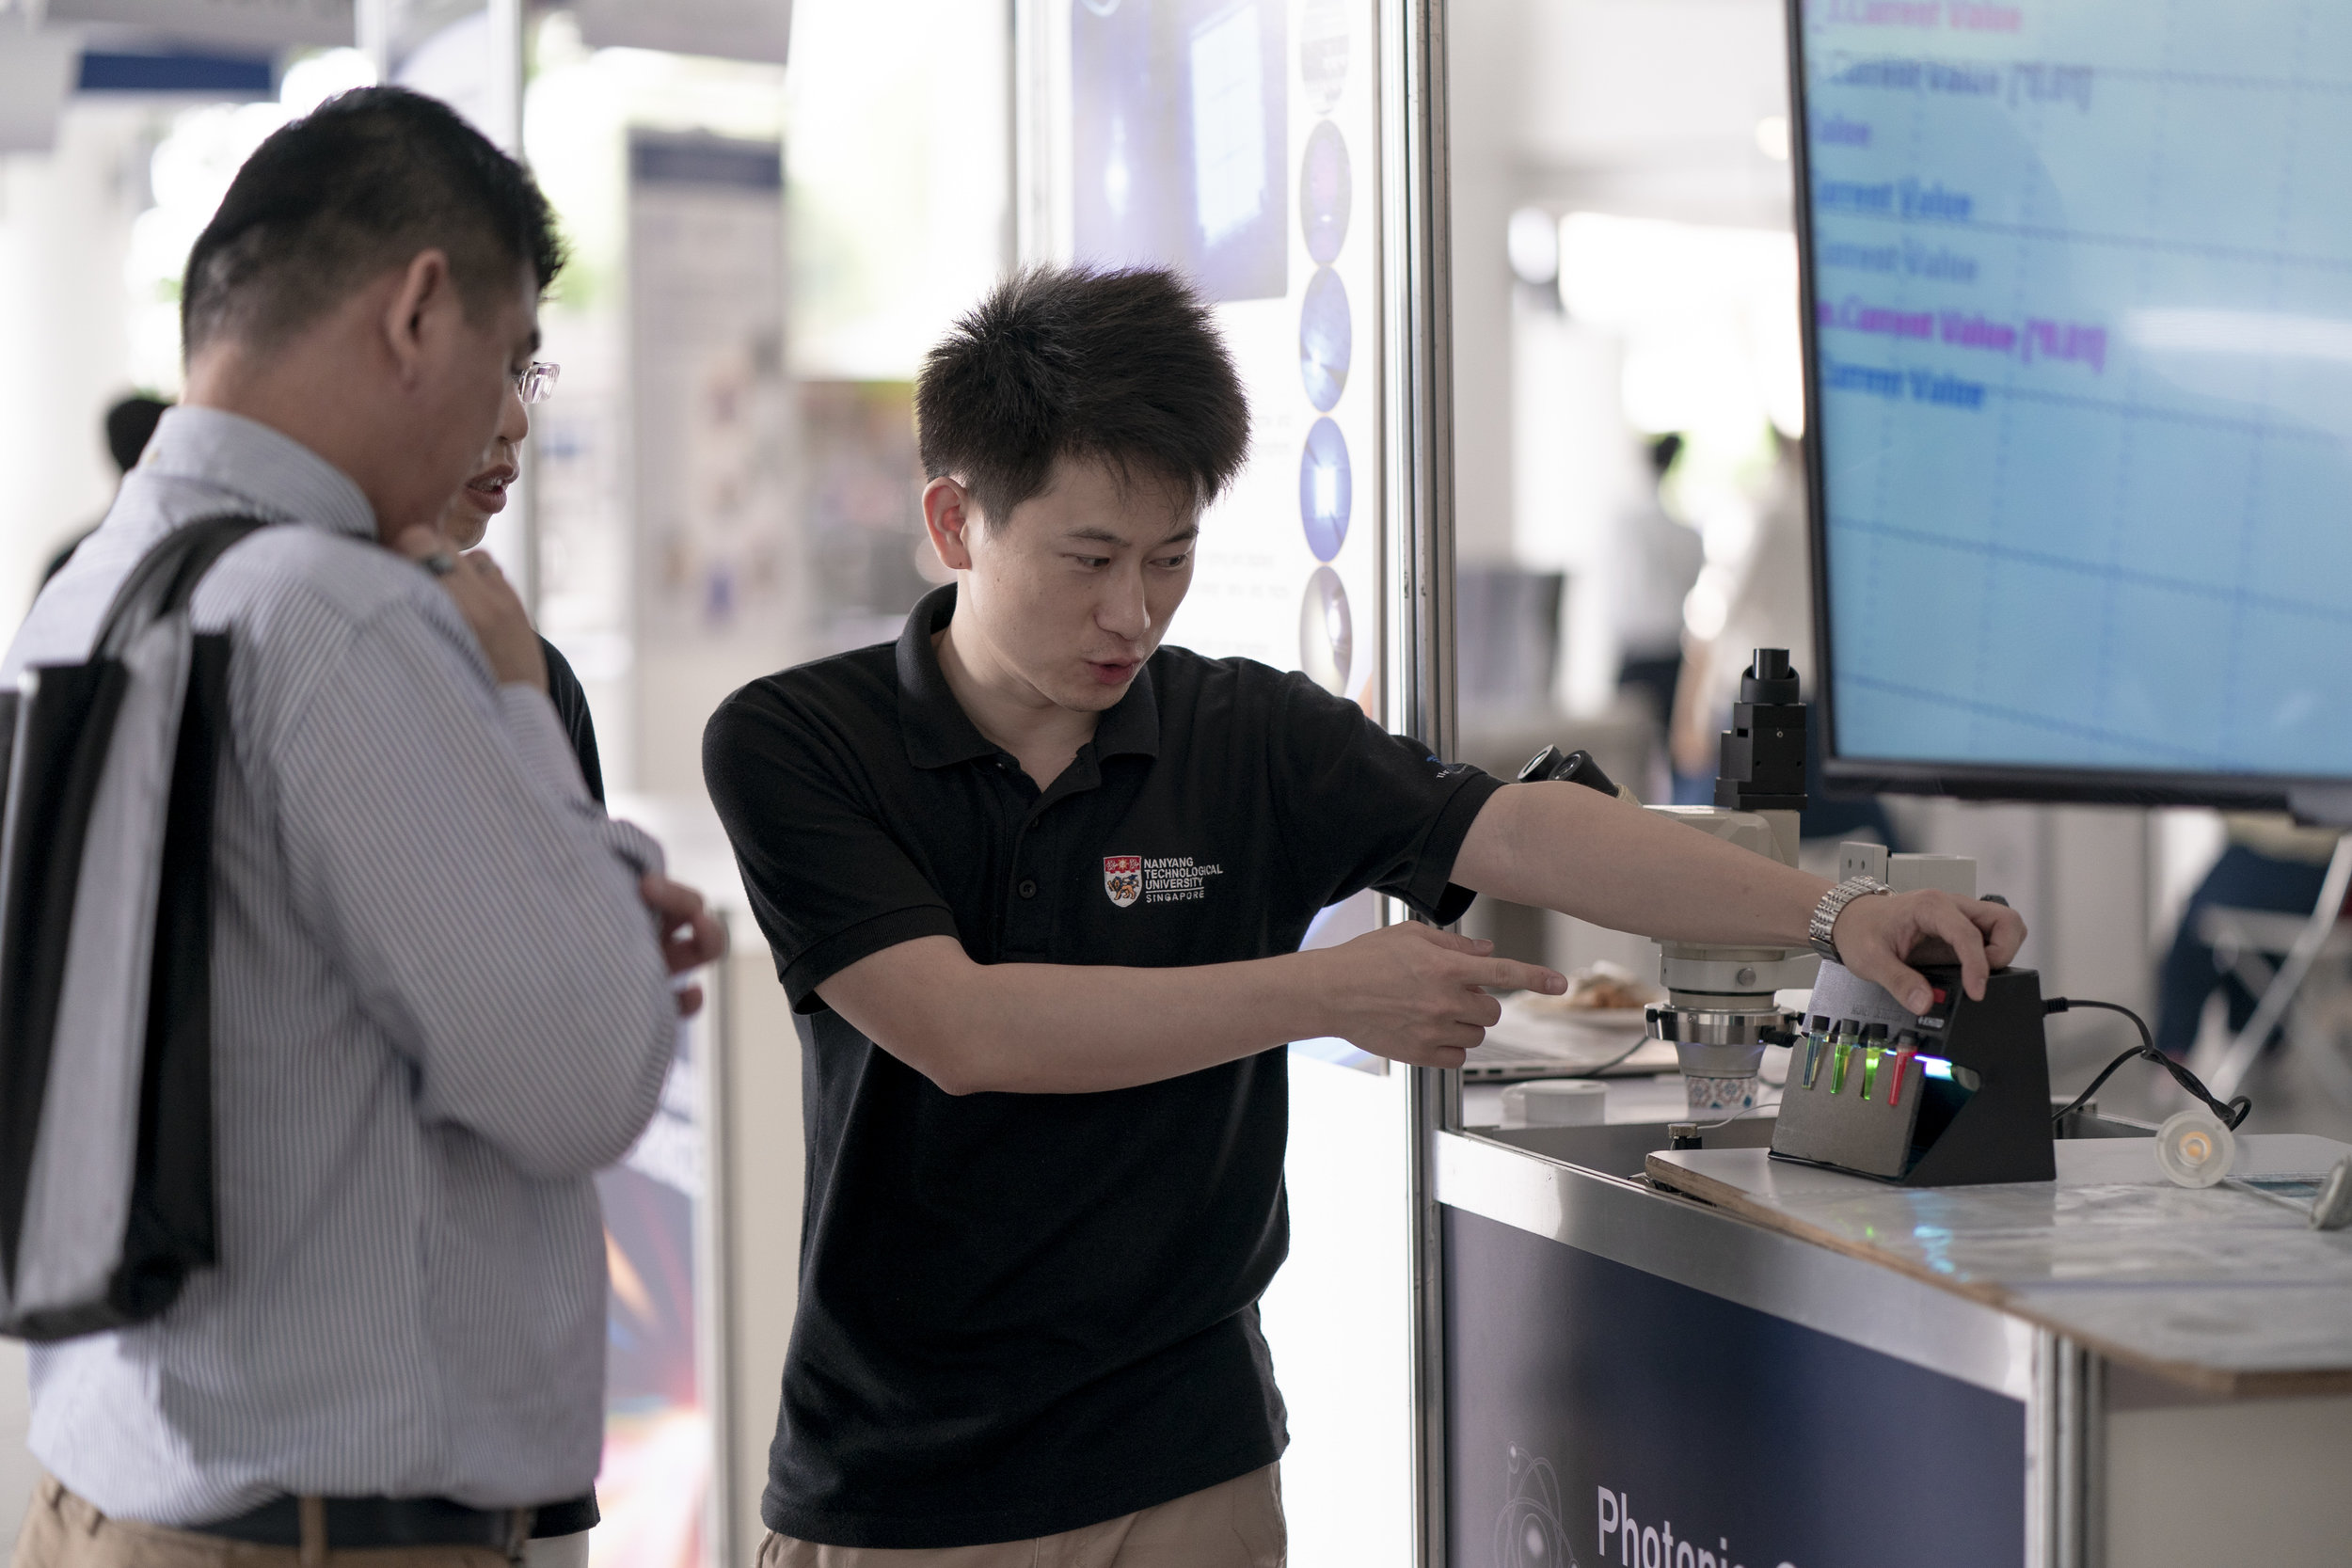 TPI Photonics SG 2018 Conference n Exhibition 0080rc.jpg